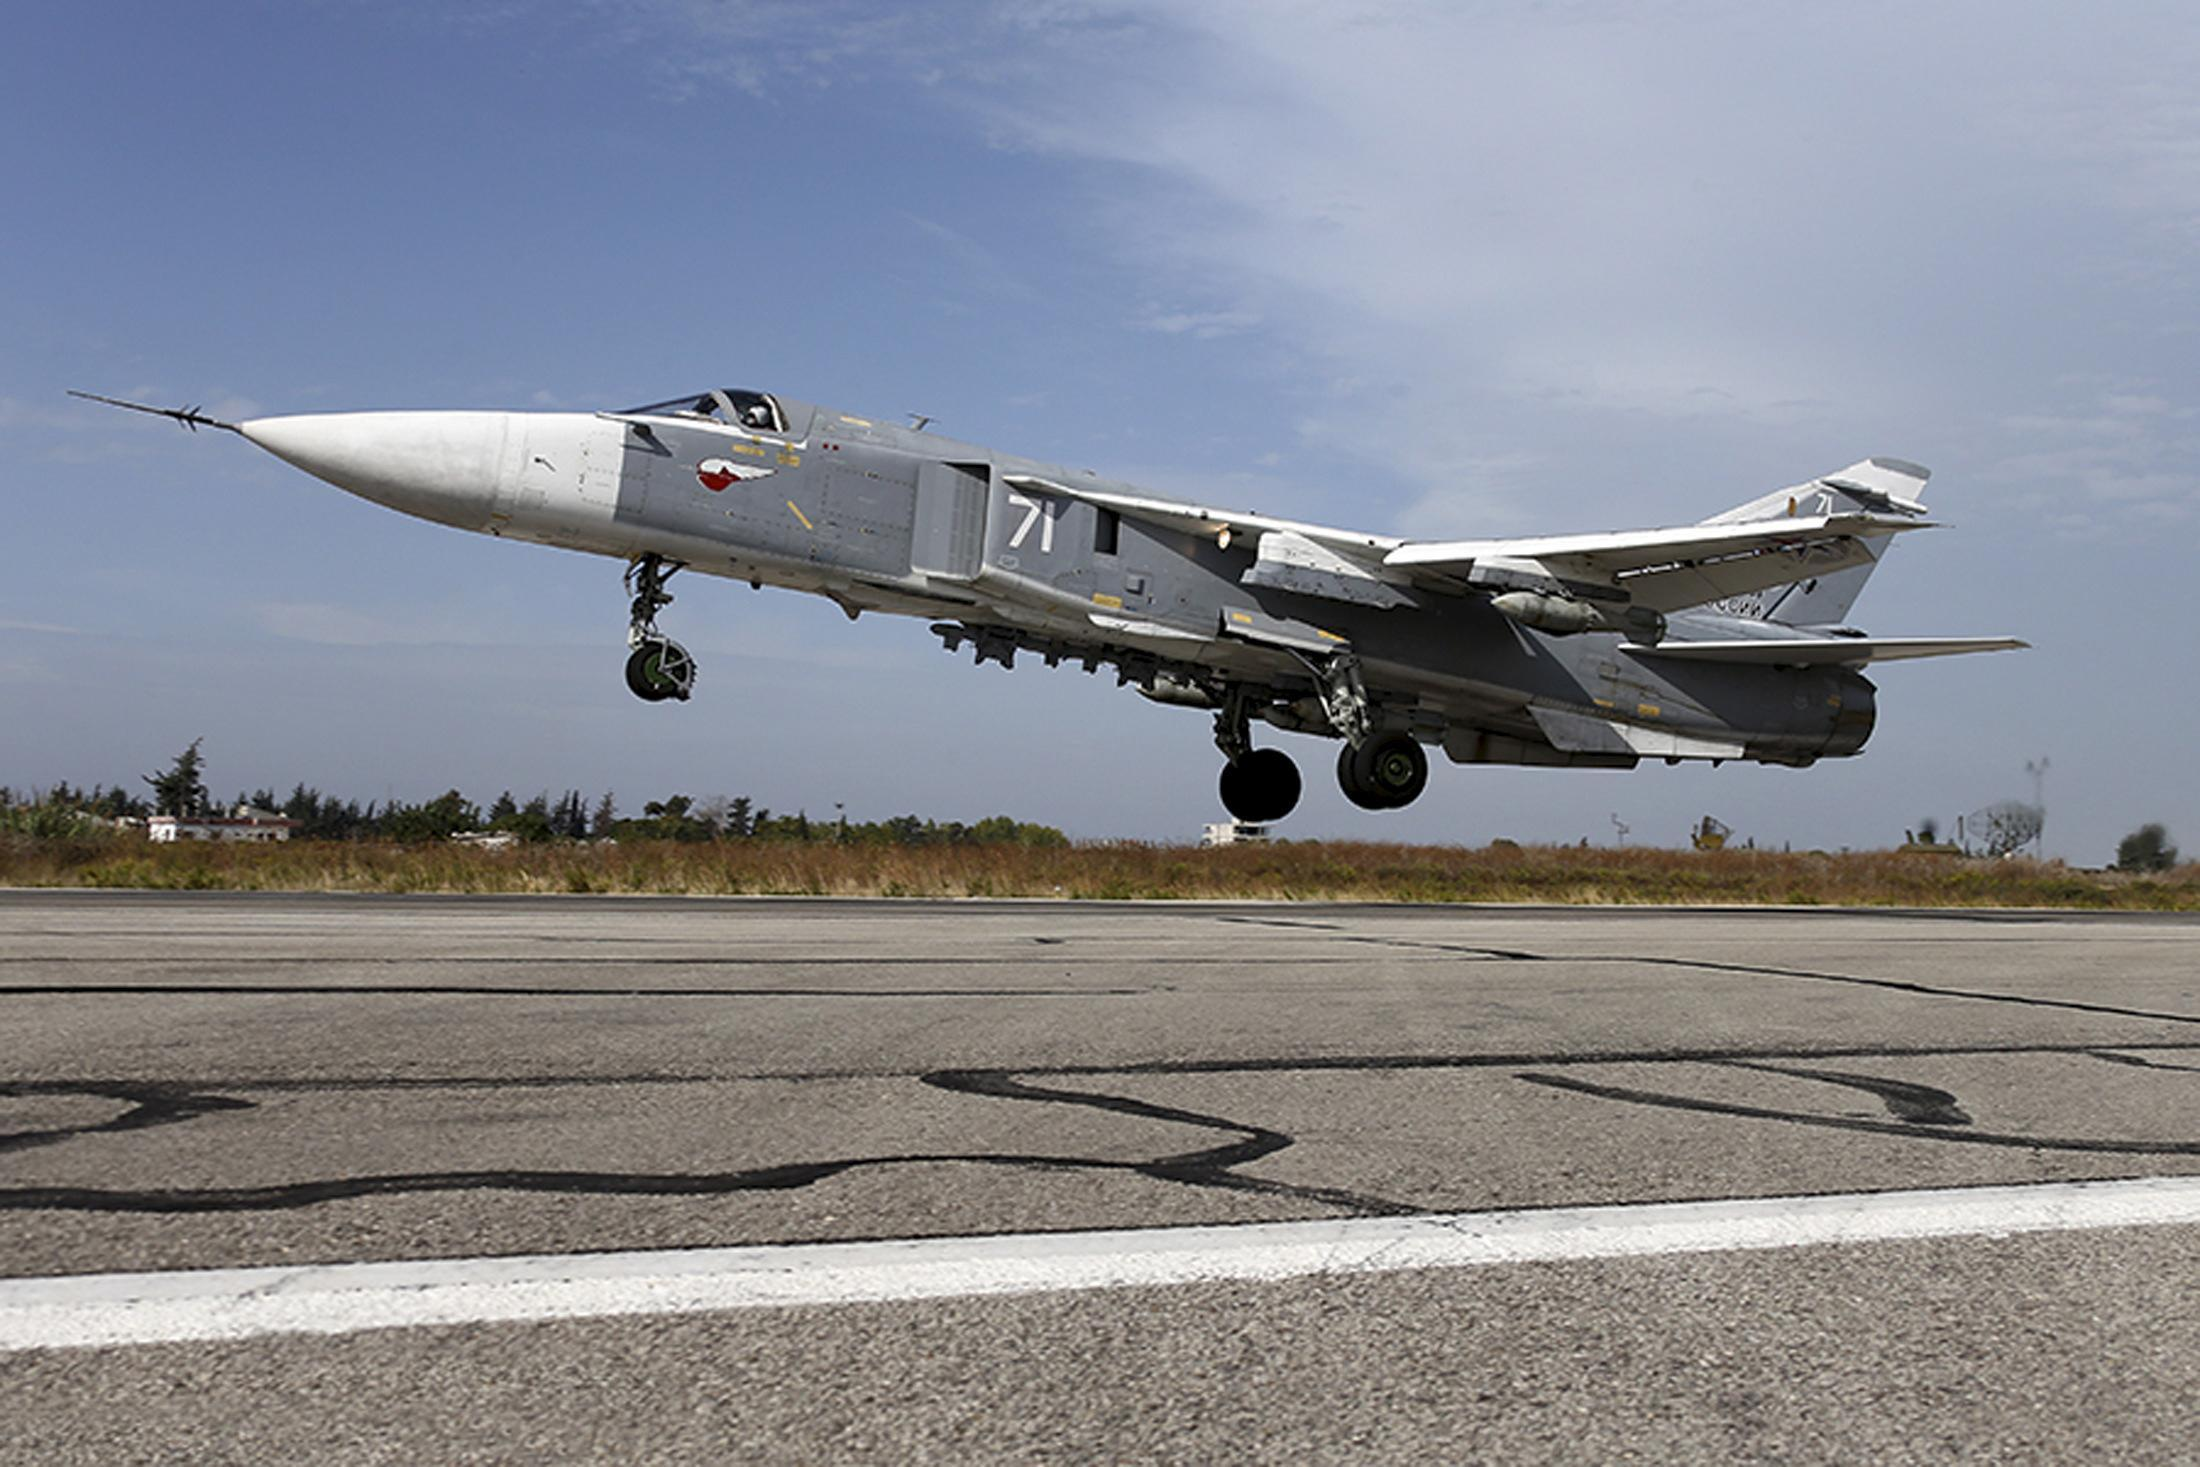 Russia Tested NATO Aircraft Four Times In Same Day